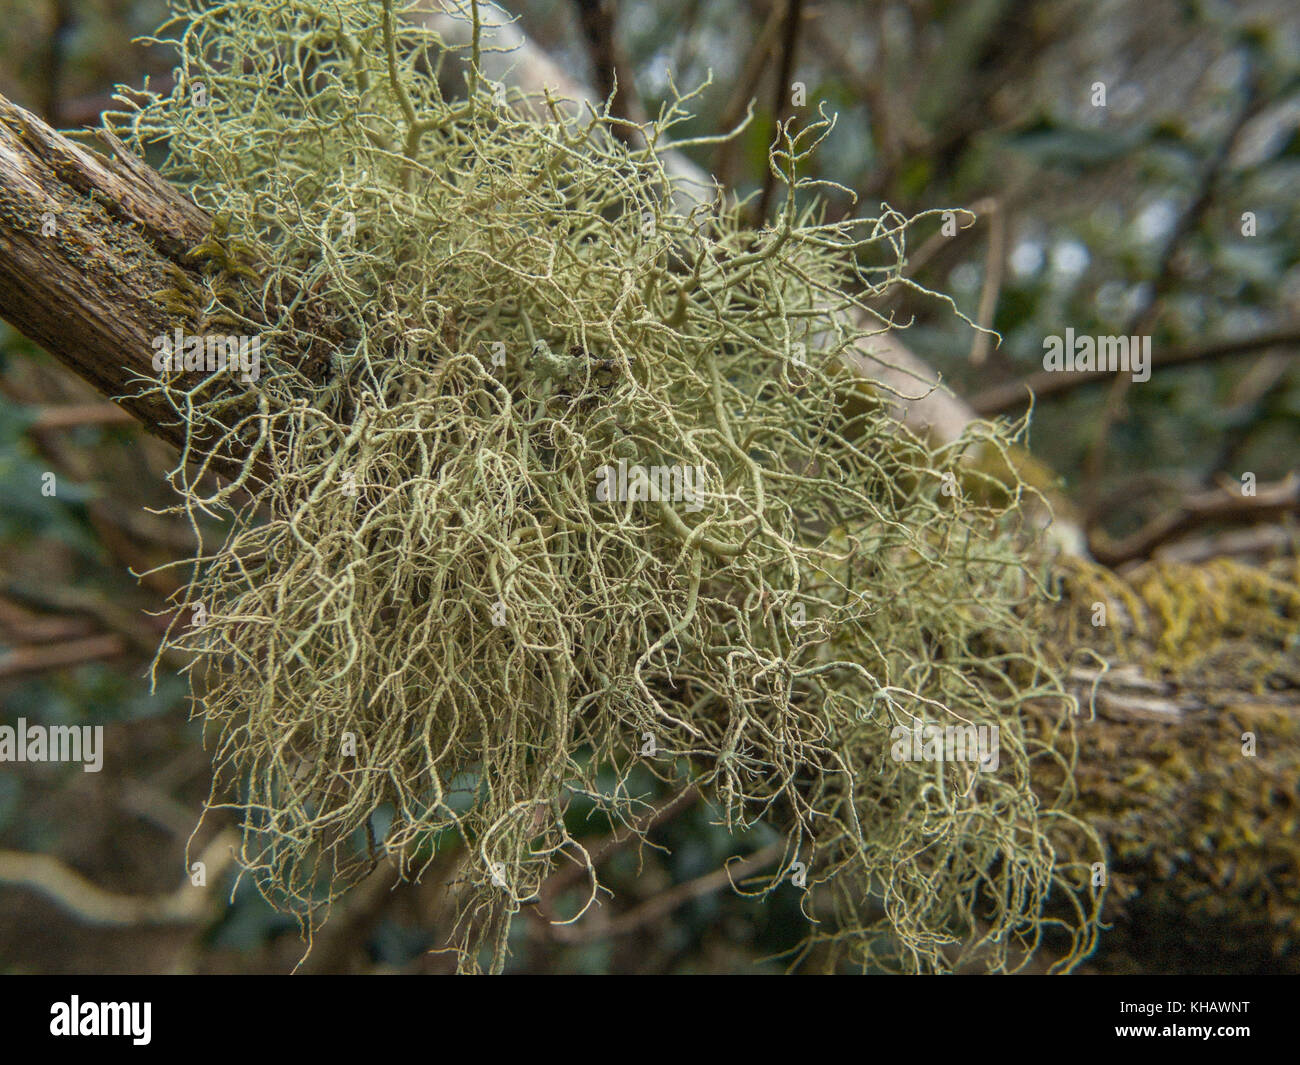 Some form of whispy green lichen on a tree branch. Unidentified. - Stock Image